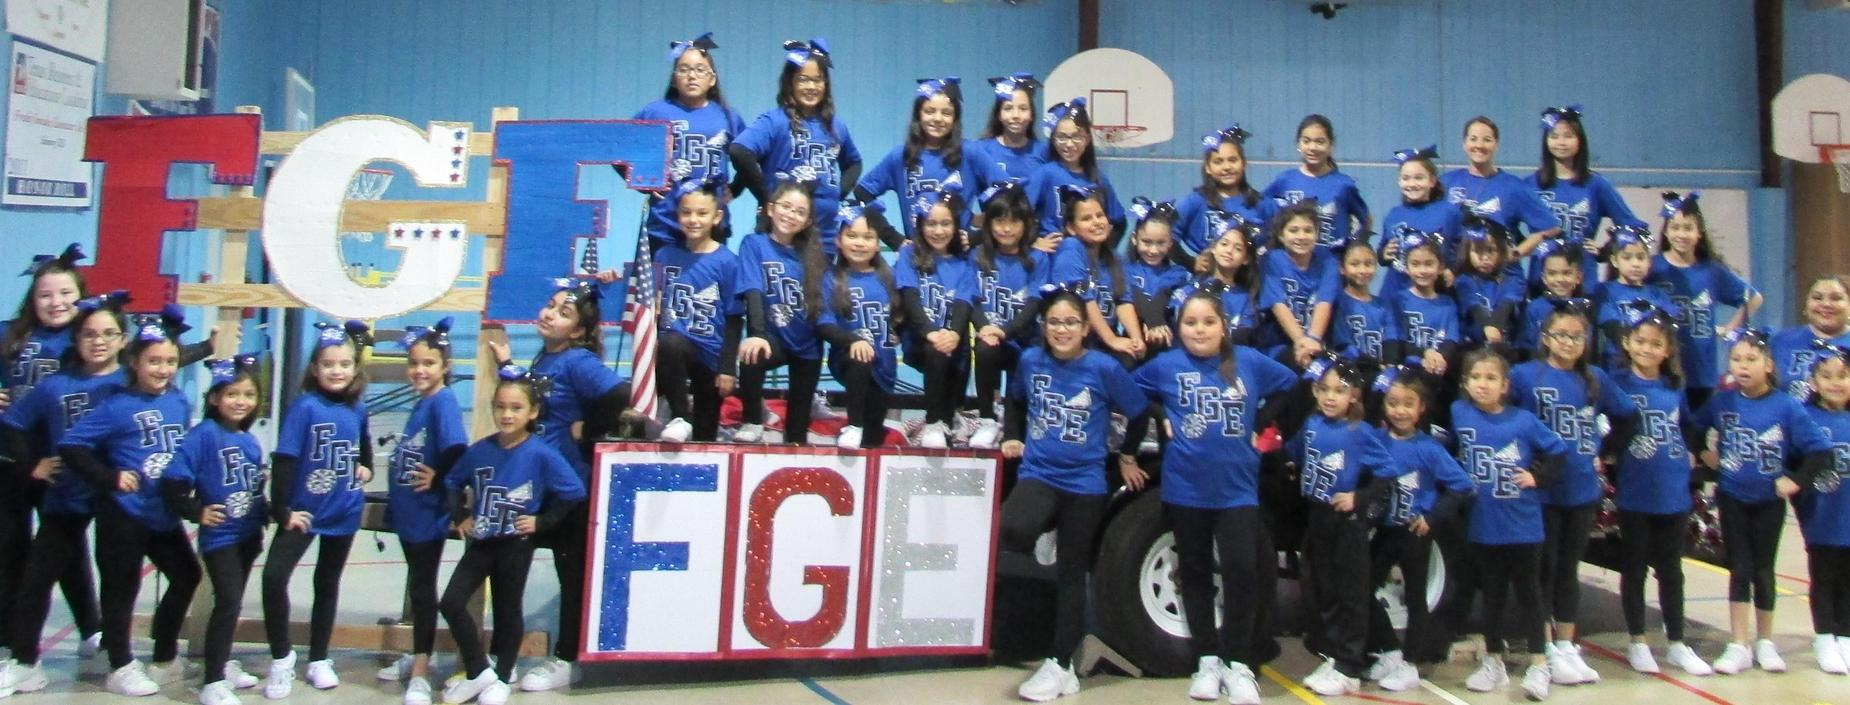 FGE Cheer Squad